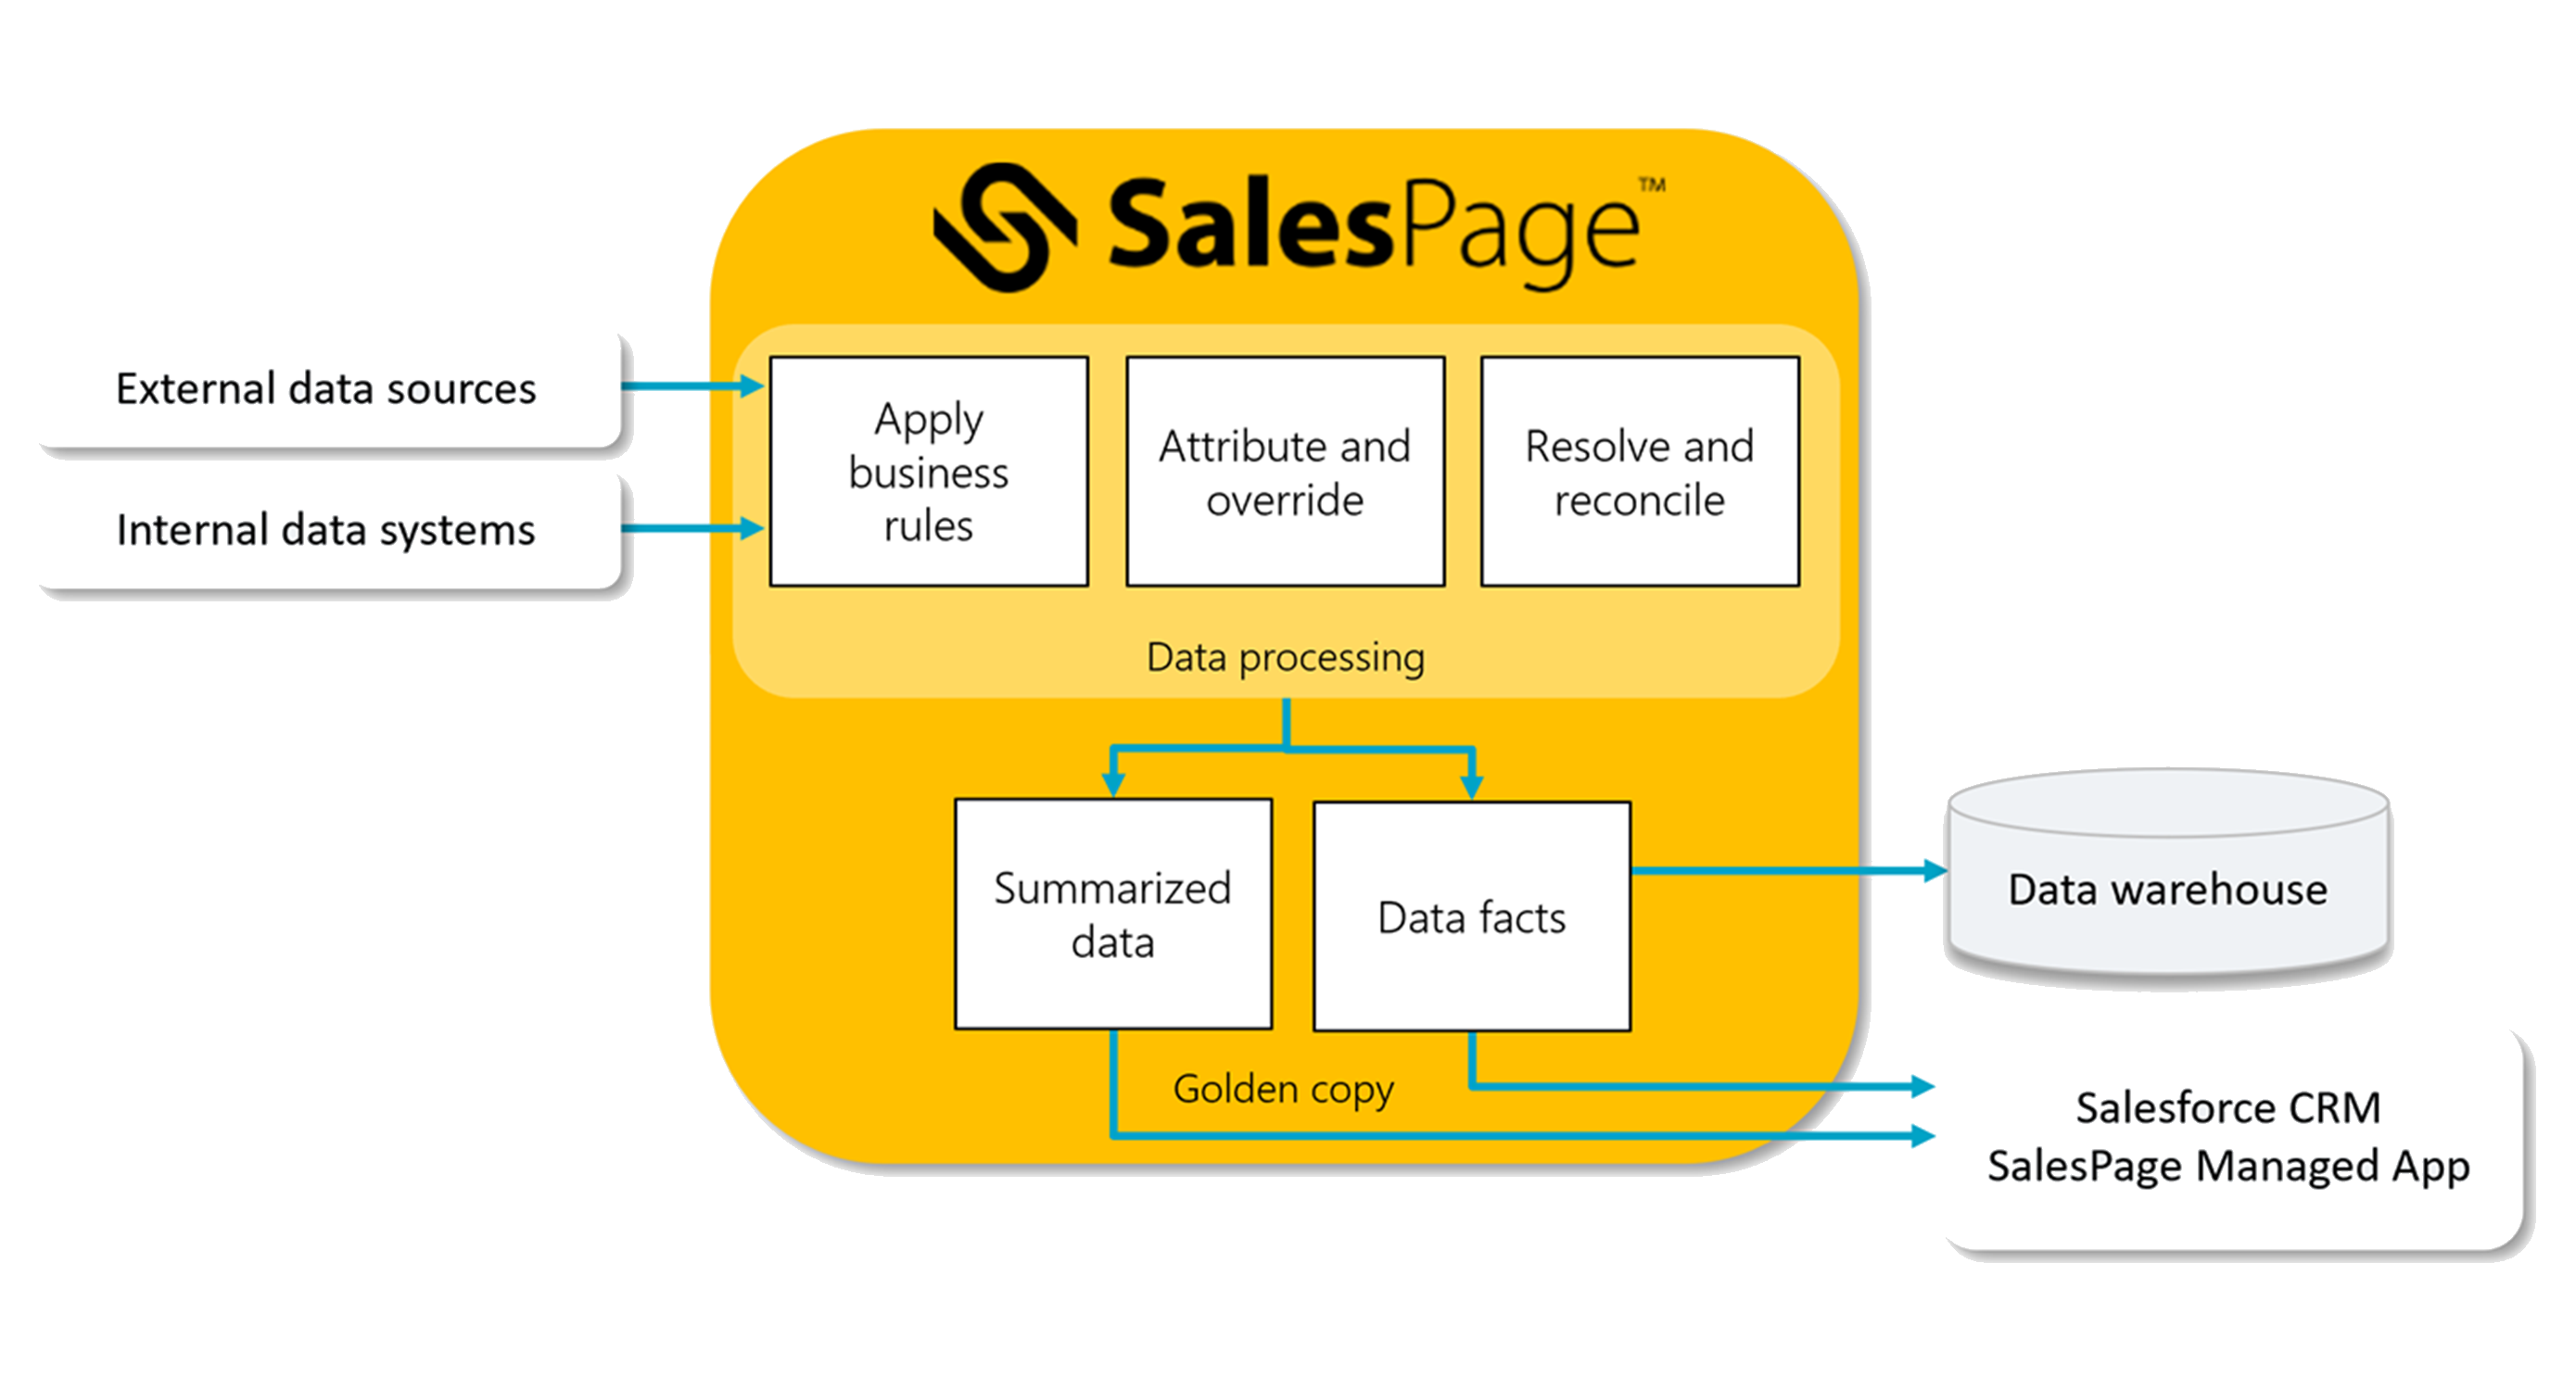 CRM integration with SalesPage